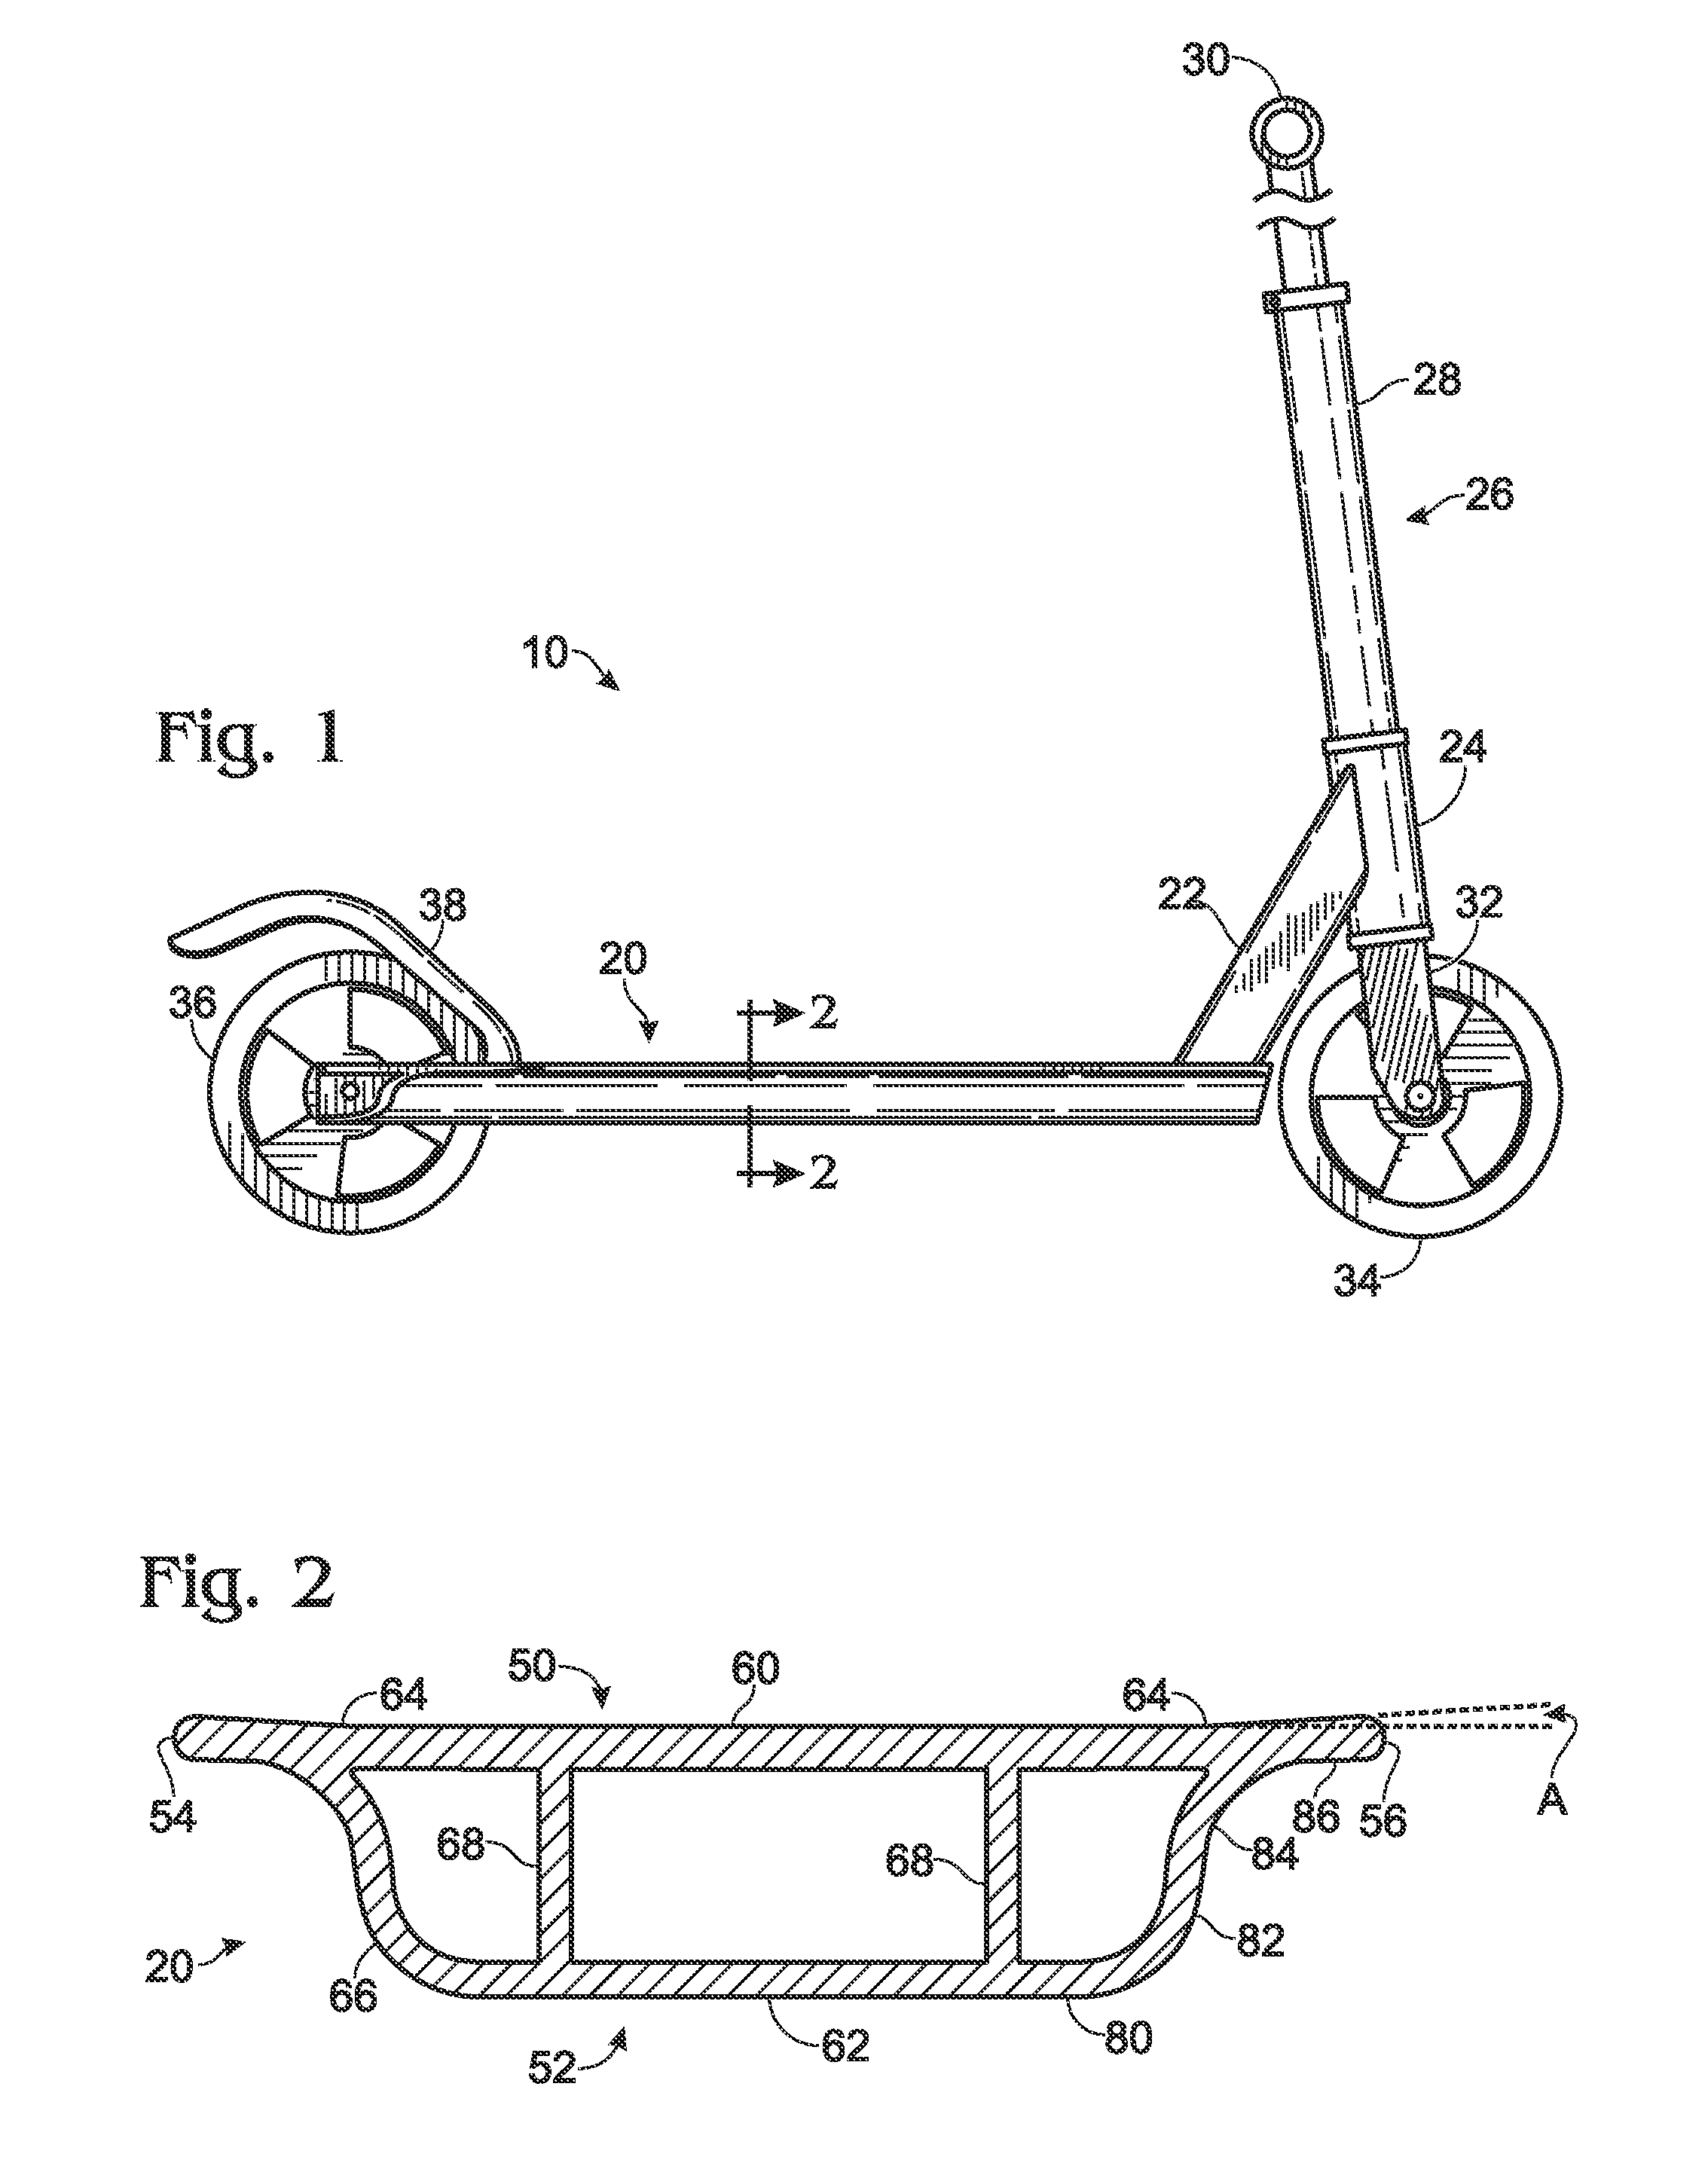 Electronics Diagrams further Ada Handicapped R  Specs 7mV LSqIIGNn9pCzxE l1iY7kKFRoChMlxCIcbeDwT0 additionally Discuss How To Trailer Canoe together with Skateboard Deck Diagram moreover Bluetooth Wiring Diagram. on electric skateboard wiring diagram